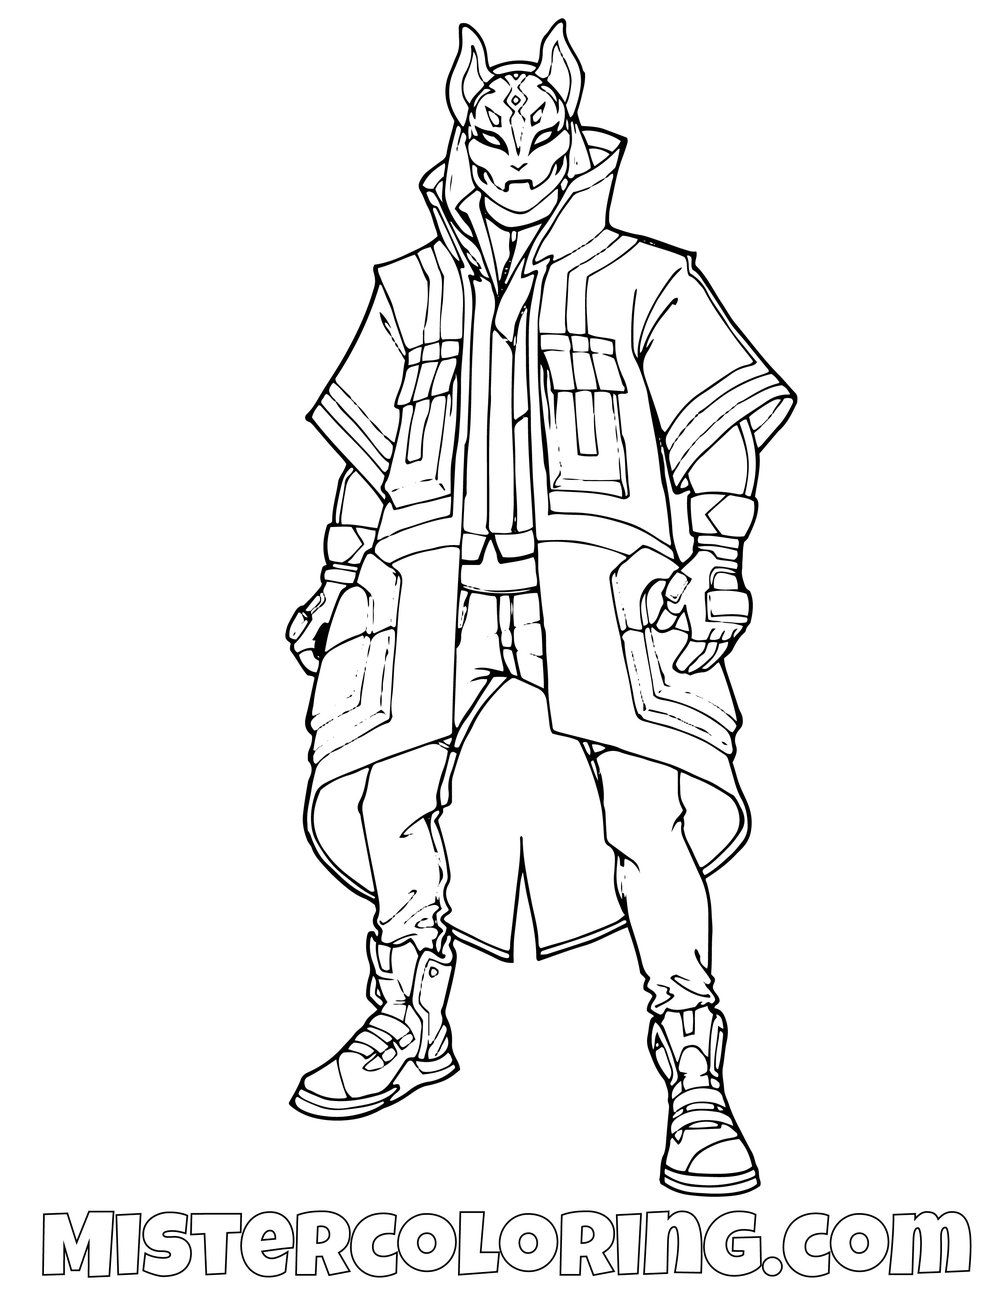 Drift Fortnite Coloring Page Coloring Pages For Kids Cartoon Coloring Pages Coloring Pages